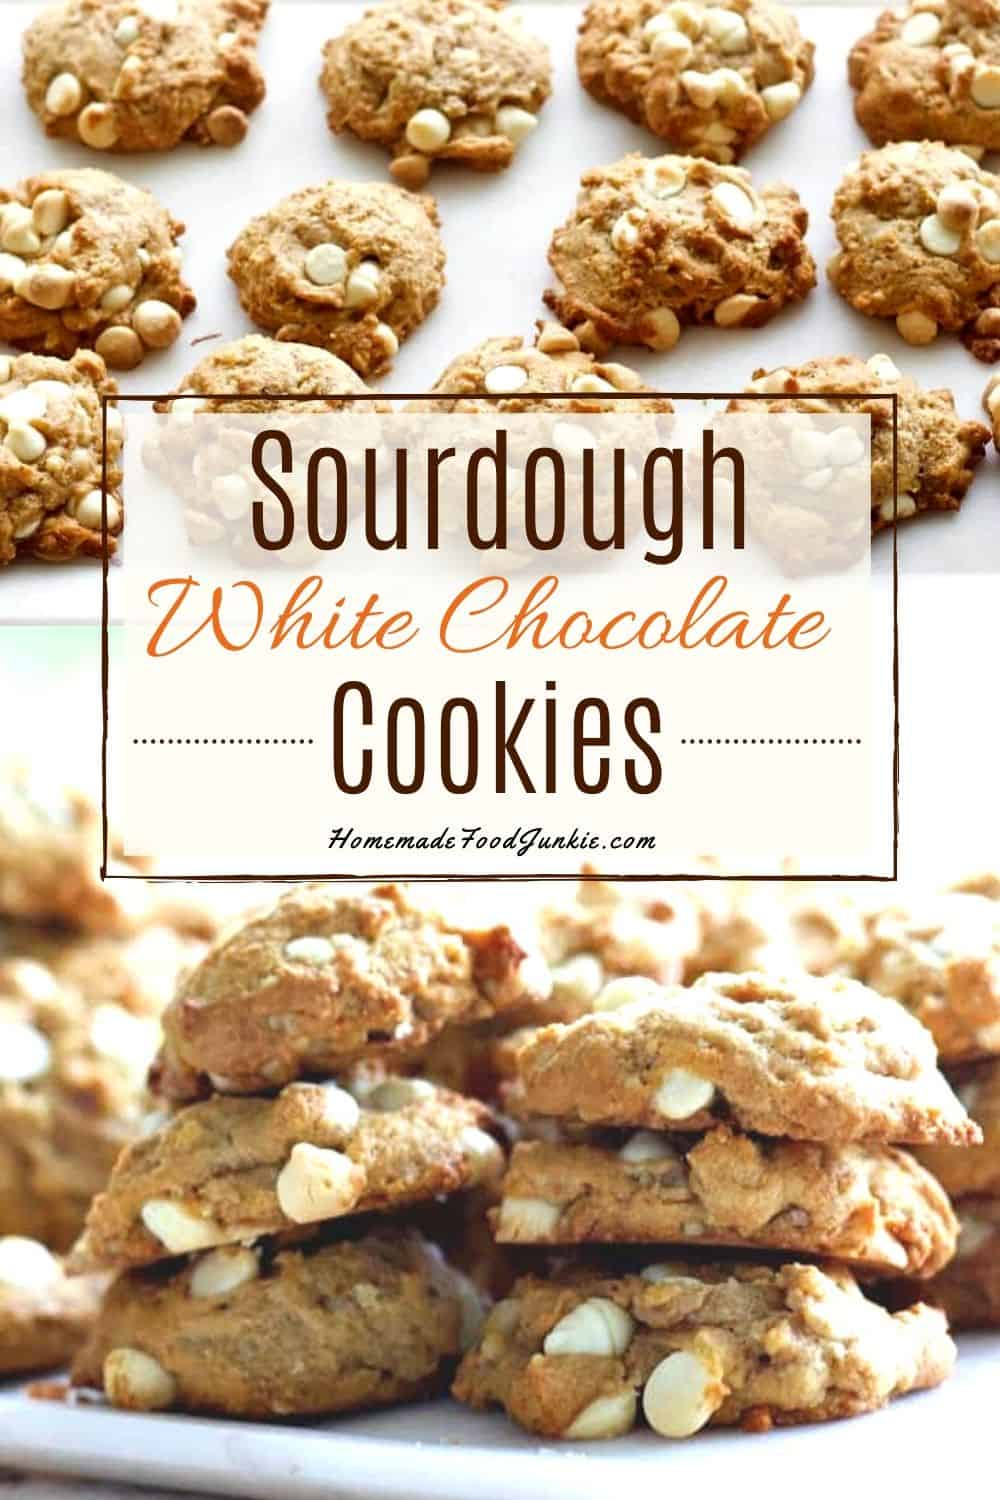 Sourdough white chocolate cookies-pin image